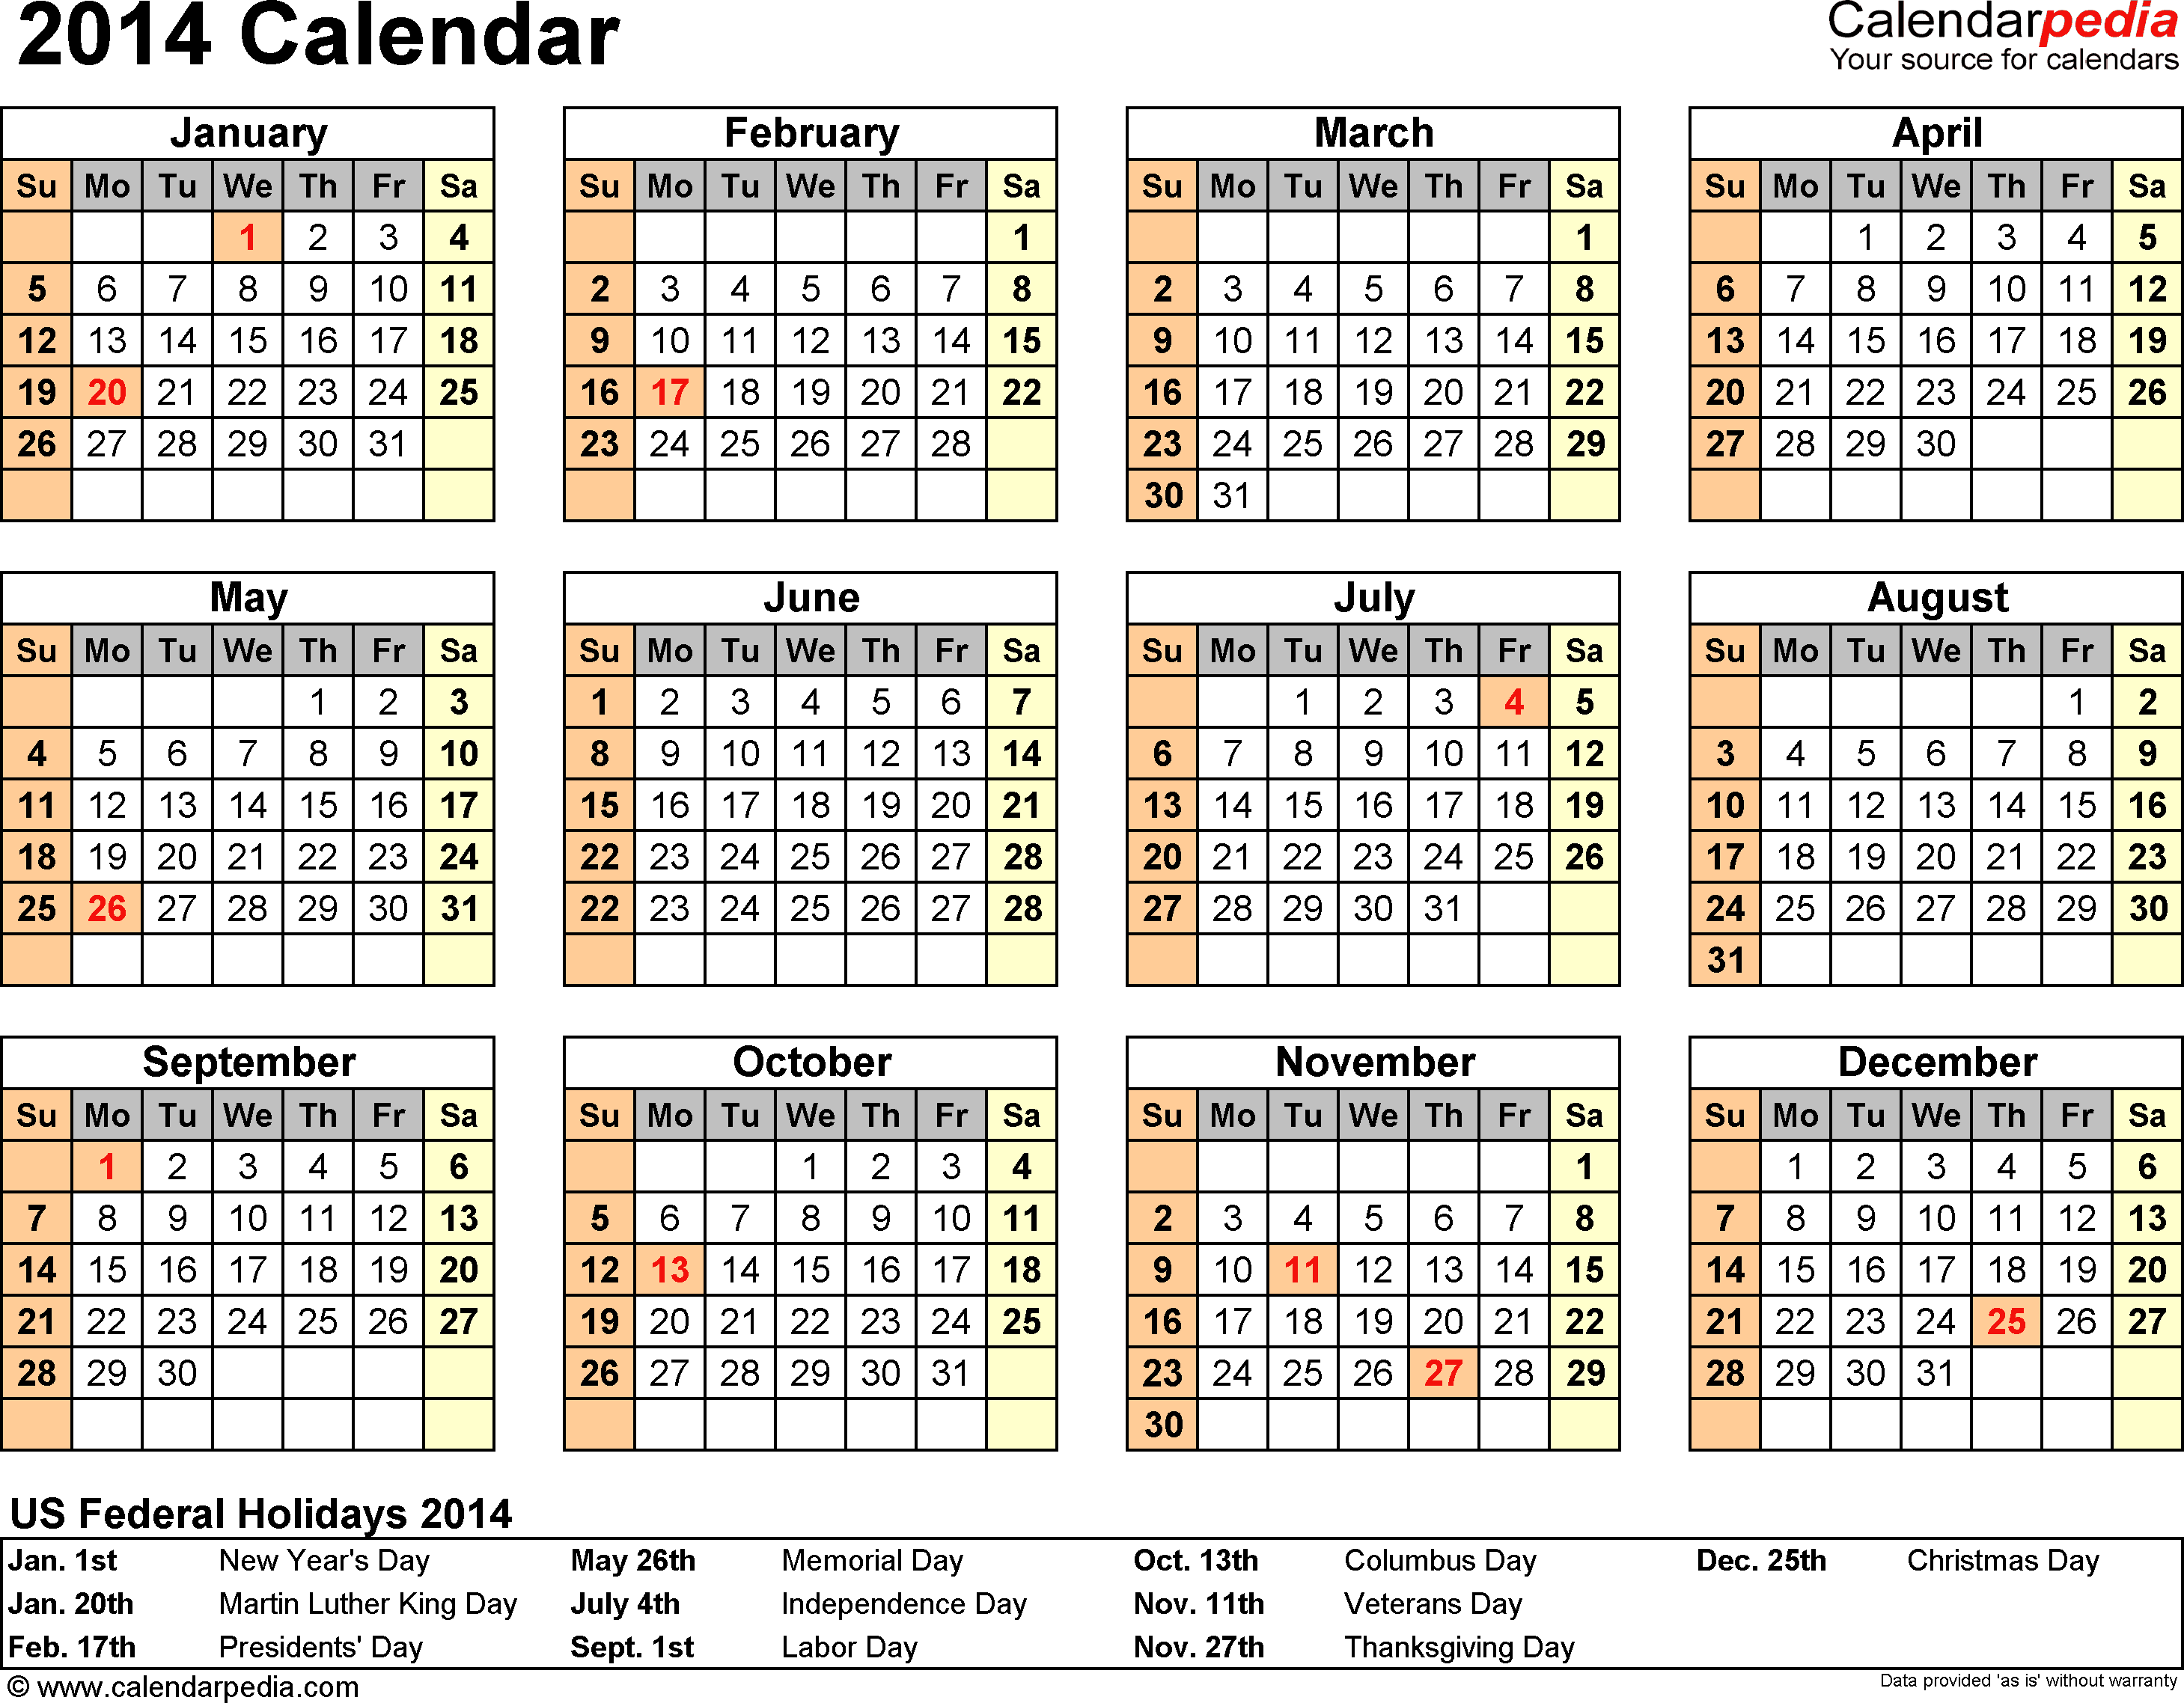 Download Excel template for 2014 calendar template 7: year overview, 1 page, with US federal holidays 2014, paper format: US letter